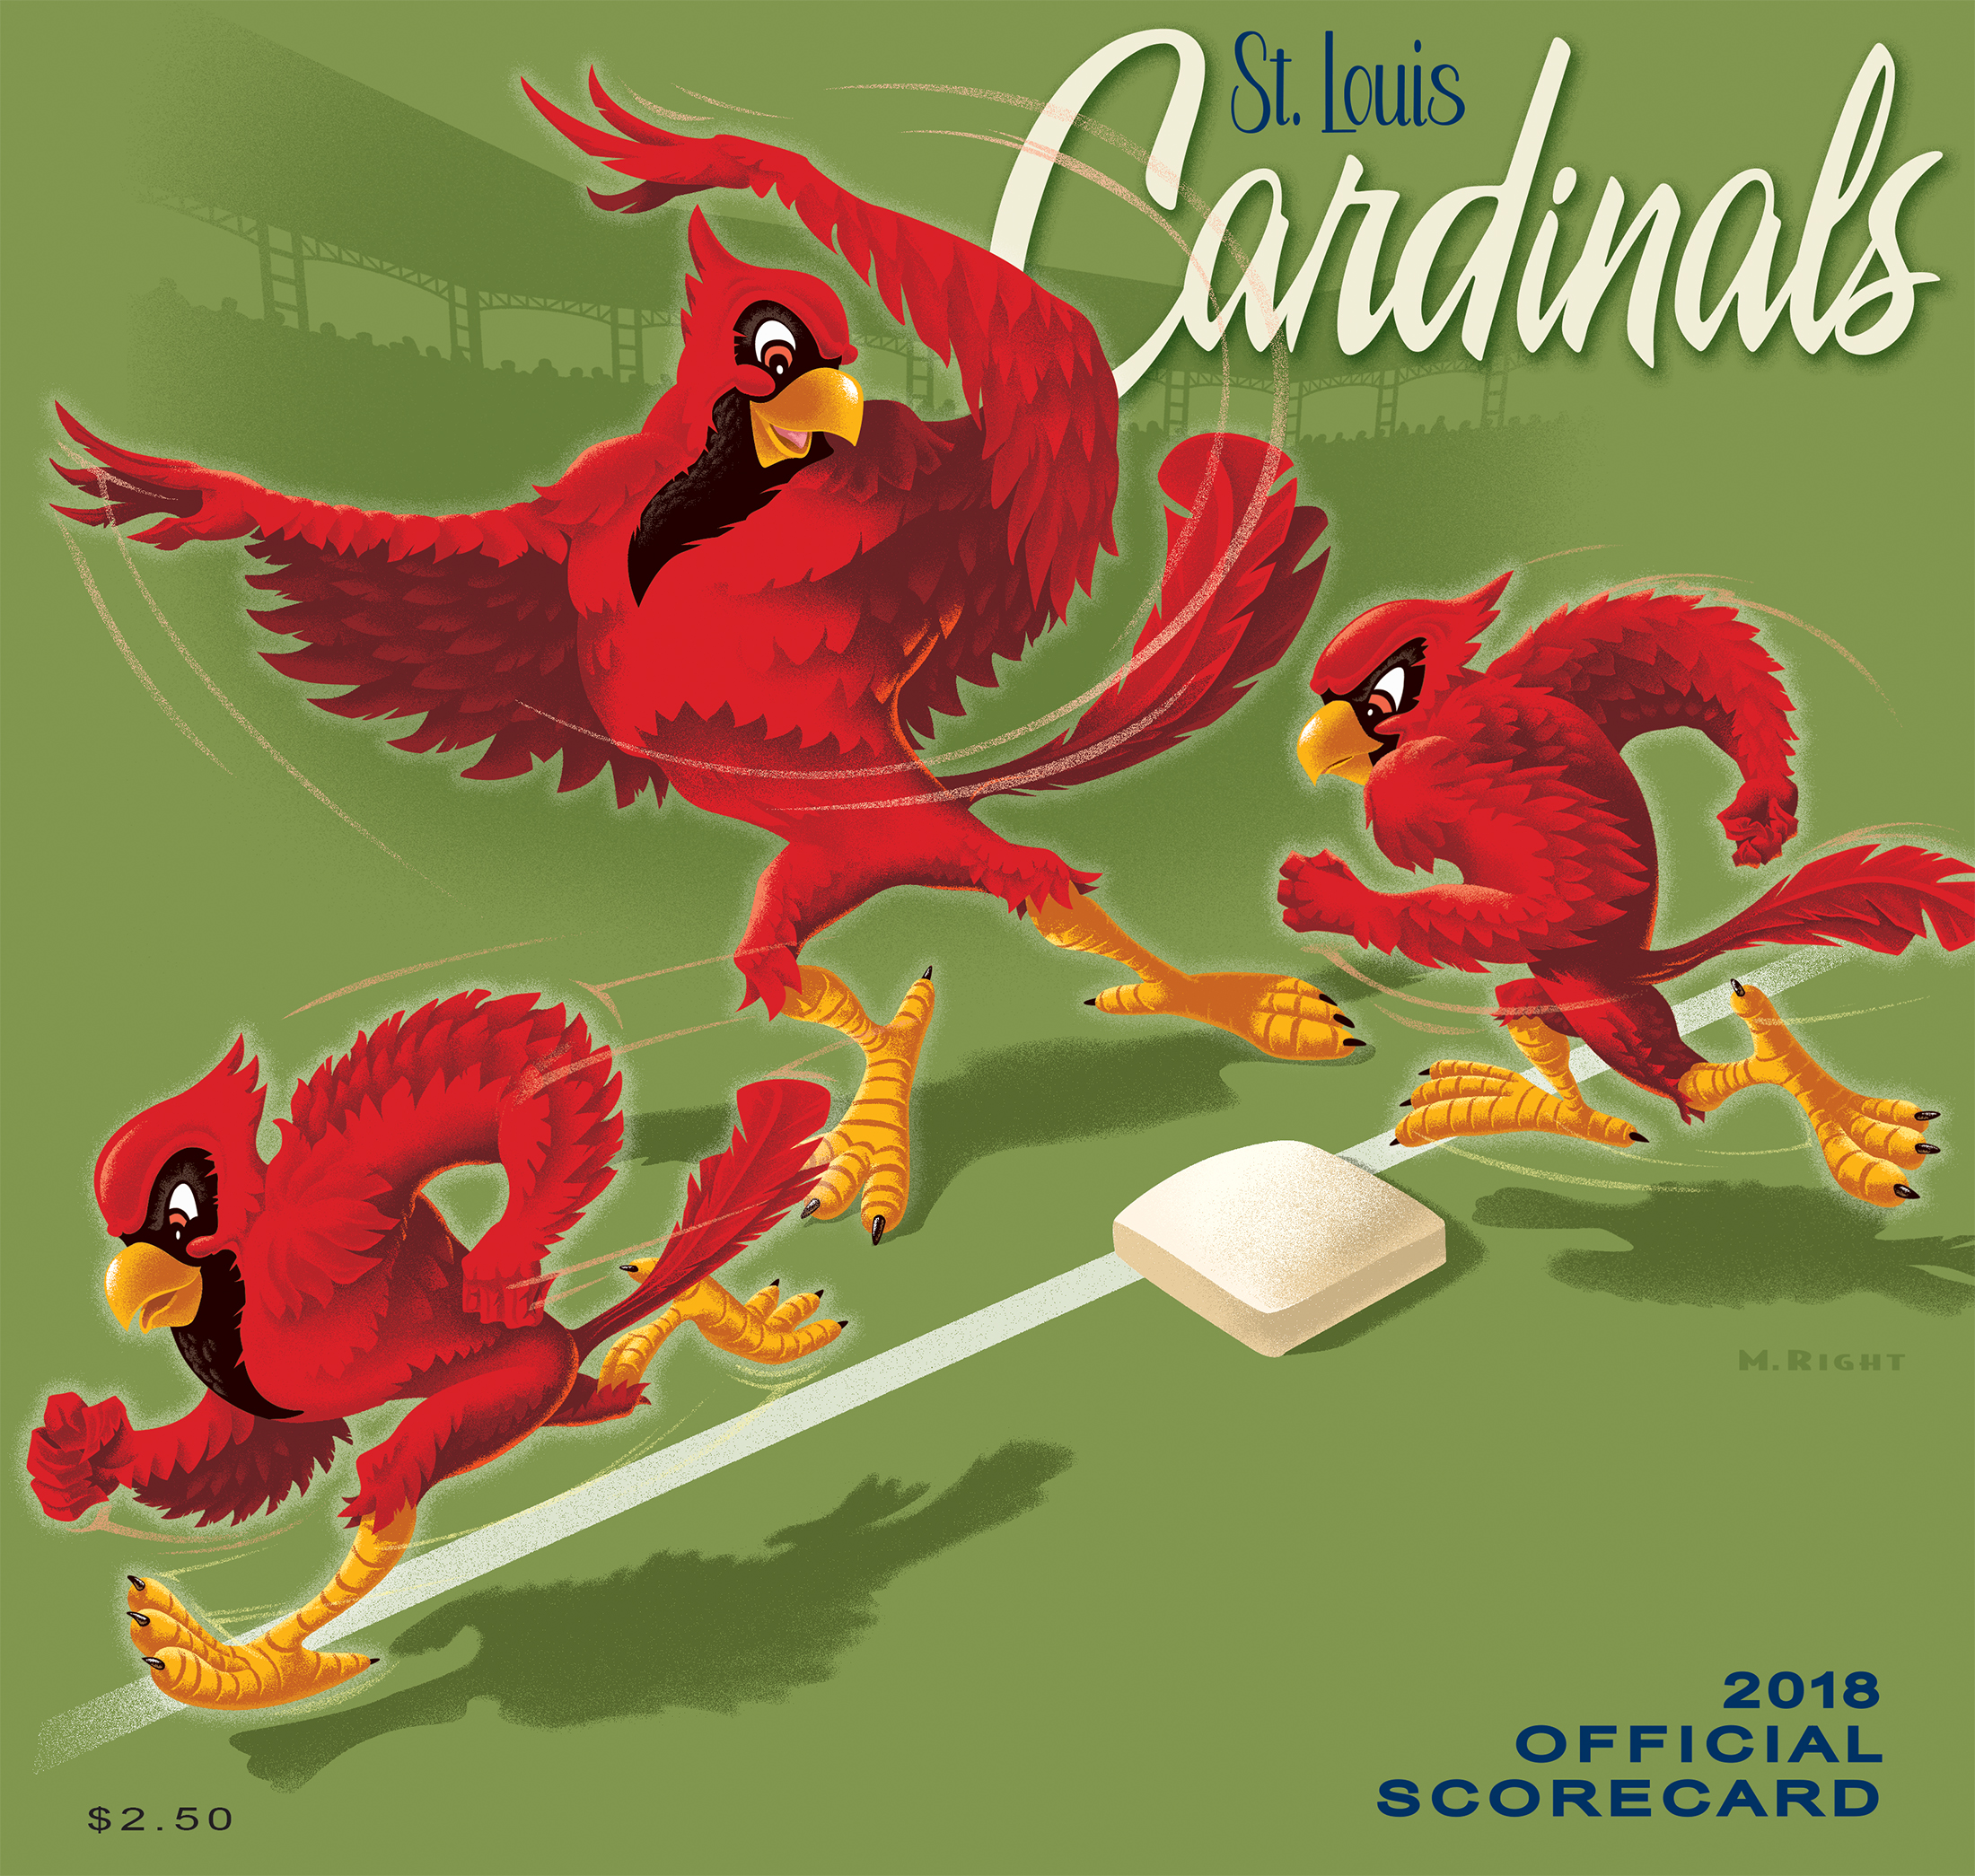 2018 Cardinals Official Scorecard